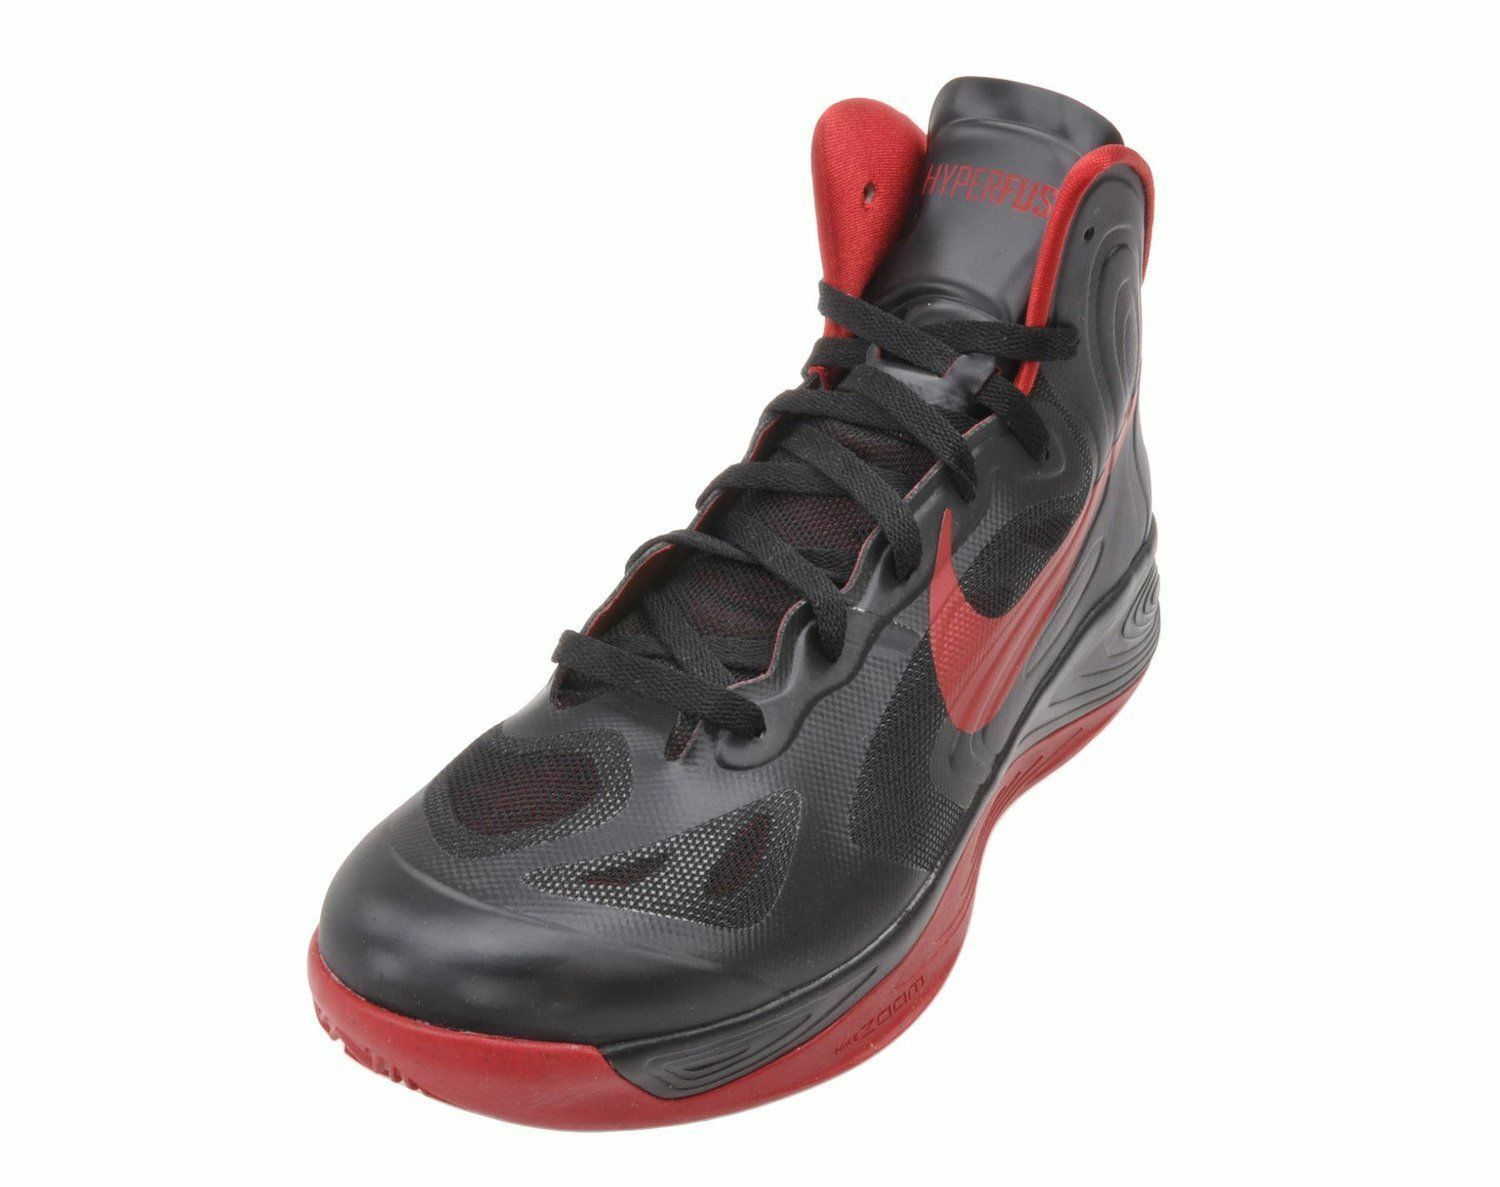 Hyperfuse team nike basketball 525019 - schuhe, 525019 basketball 004 n - schwarz / studio ROT 9226c8